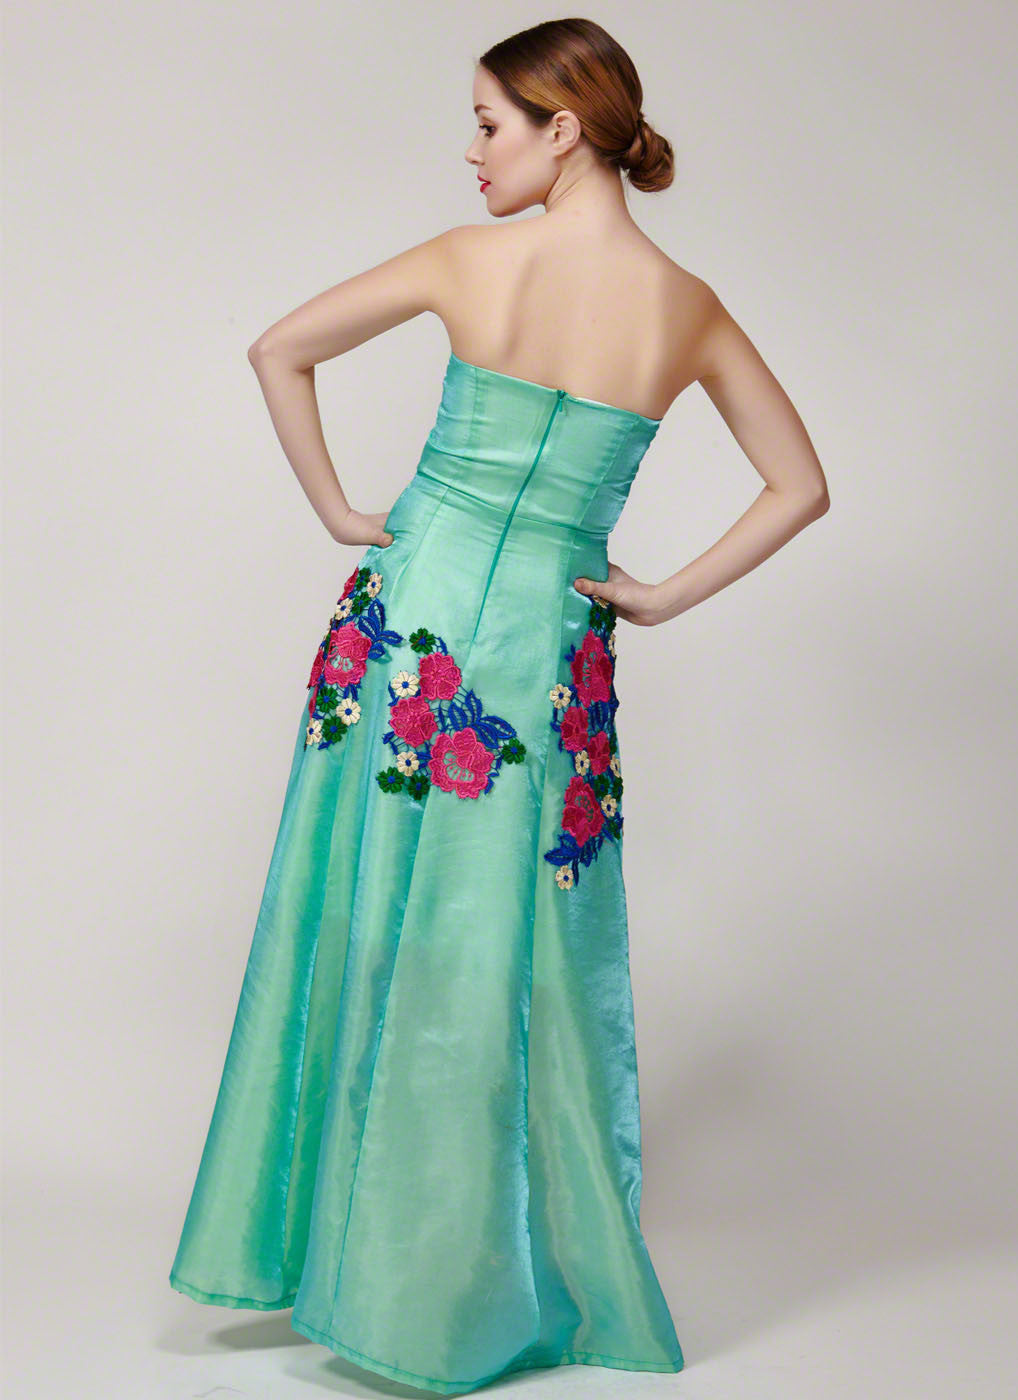 Strapless Turquoise Satin Prom Dress with Colorful Floral Lace ...